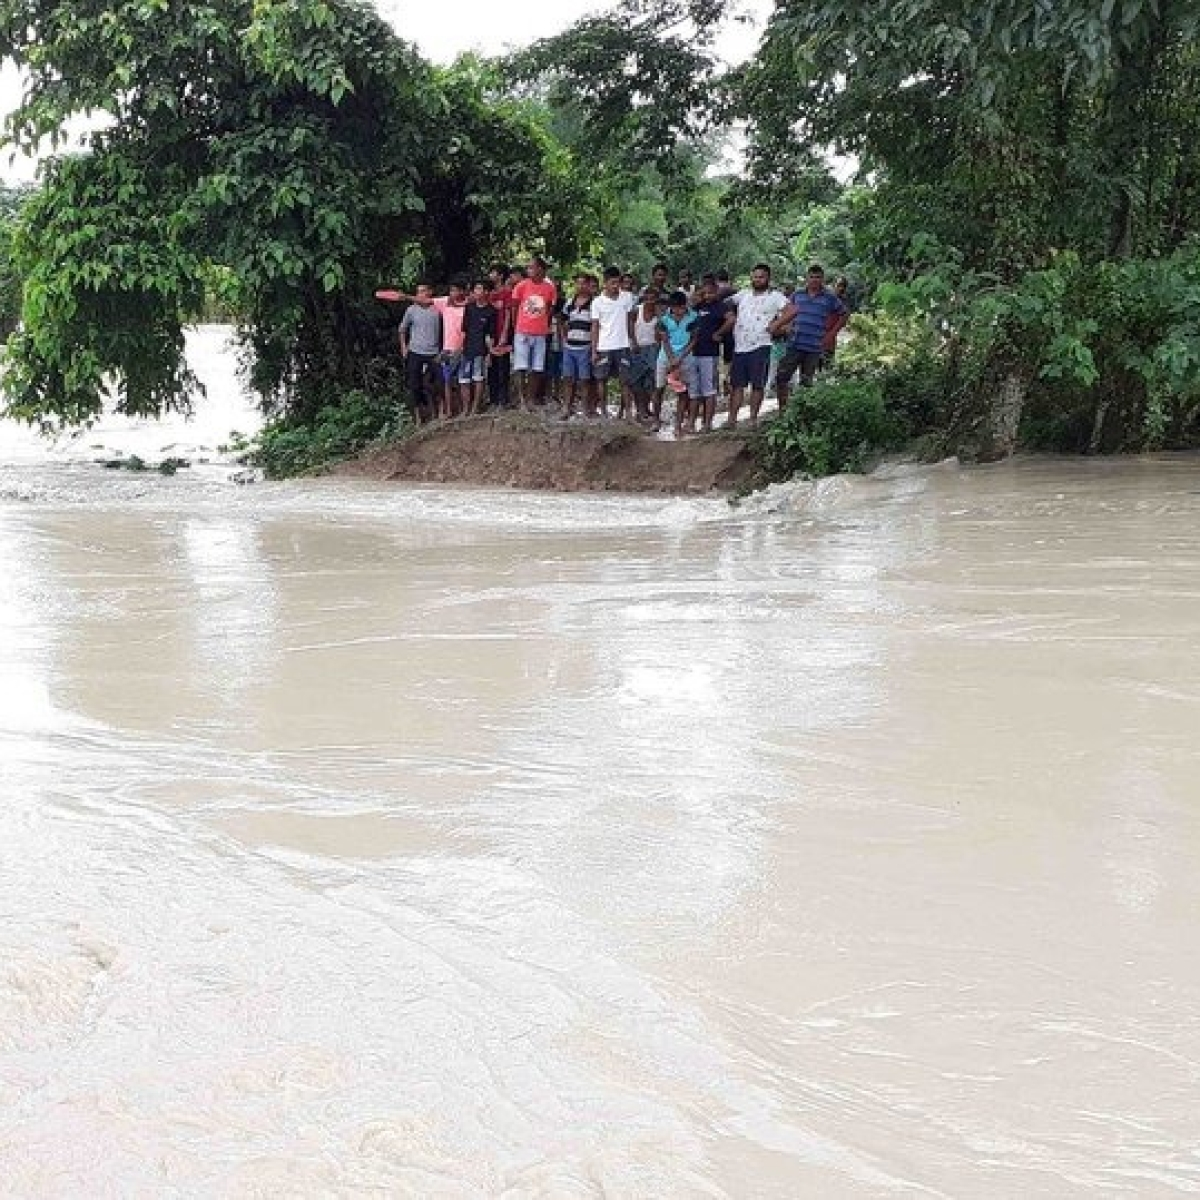 In Pictures: Floods ravage Assam; nearly  30 killed, lakhs affected